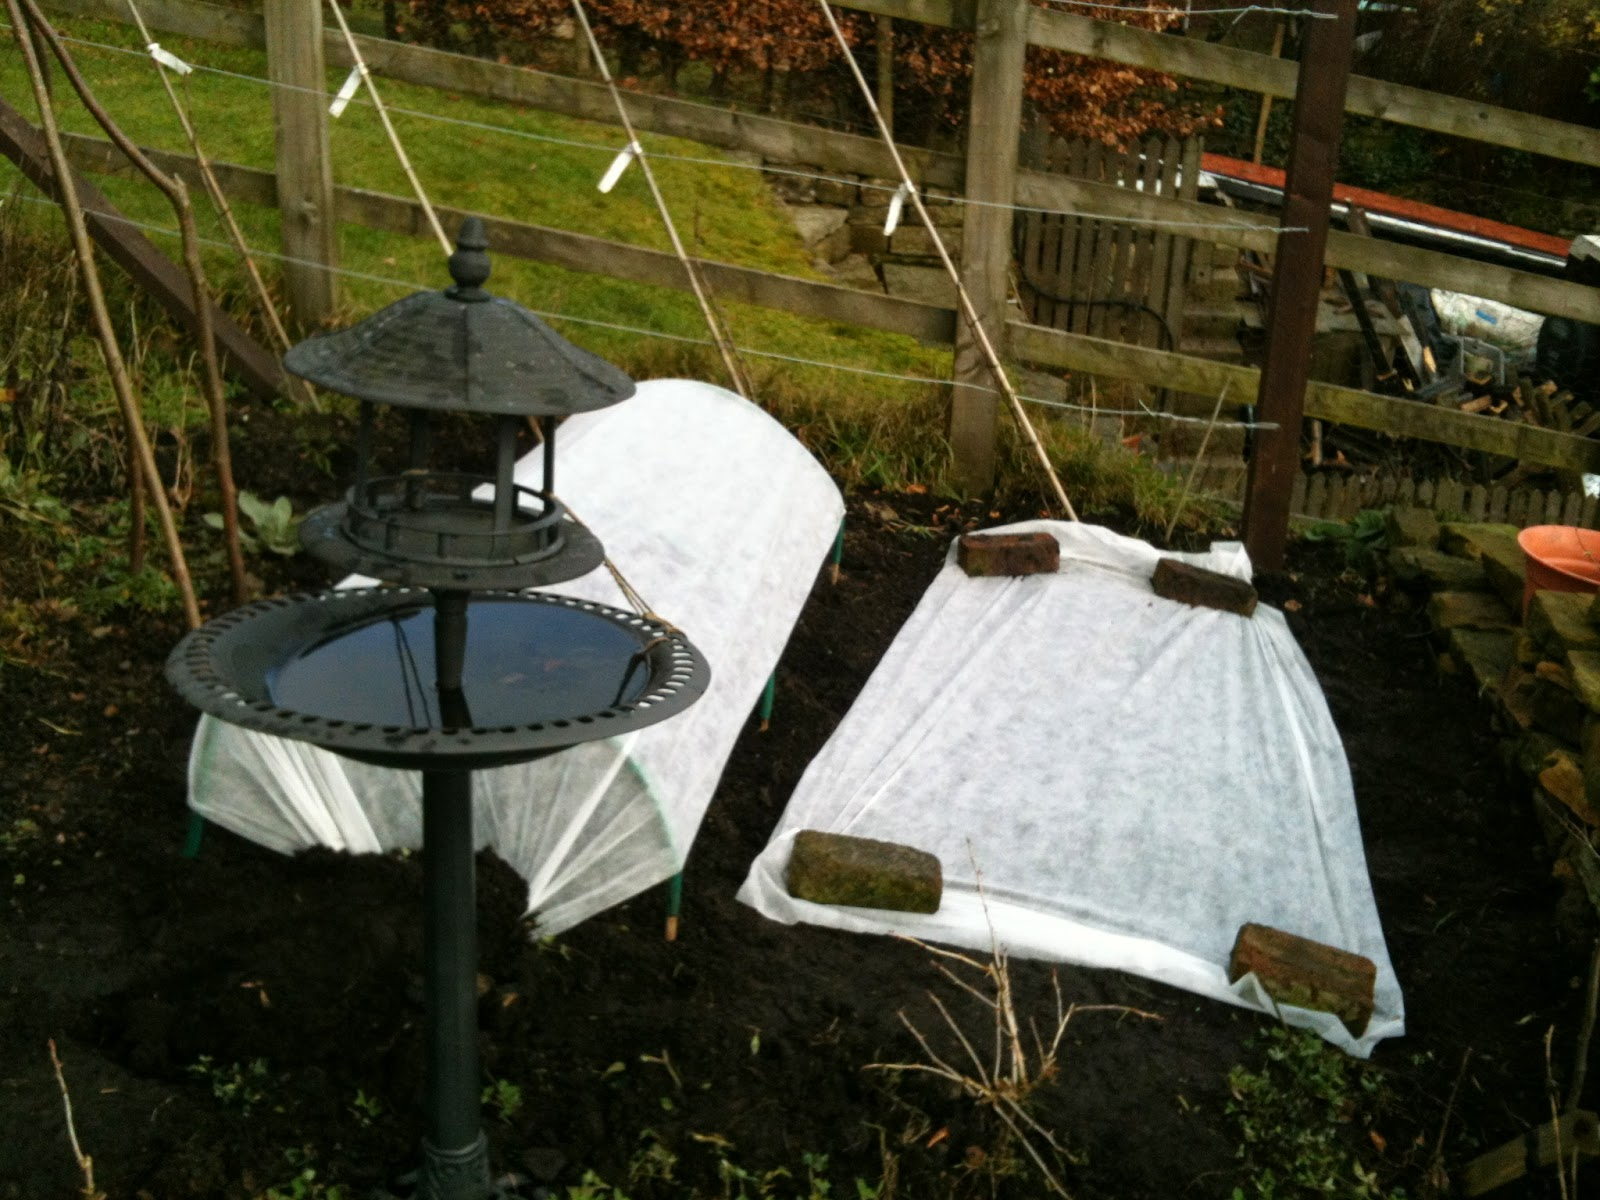 Use fleece to protect crops #growing #gardening